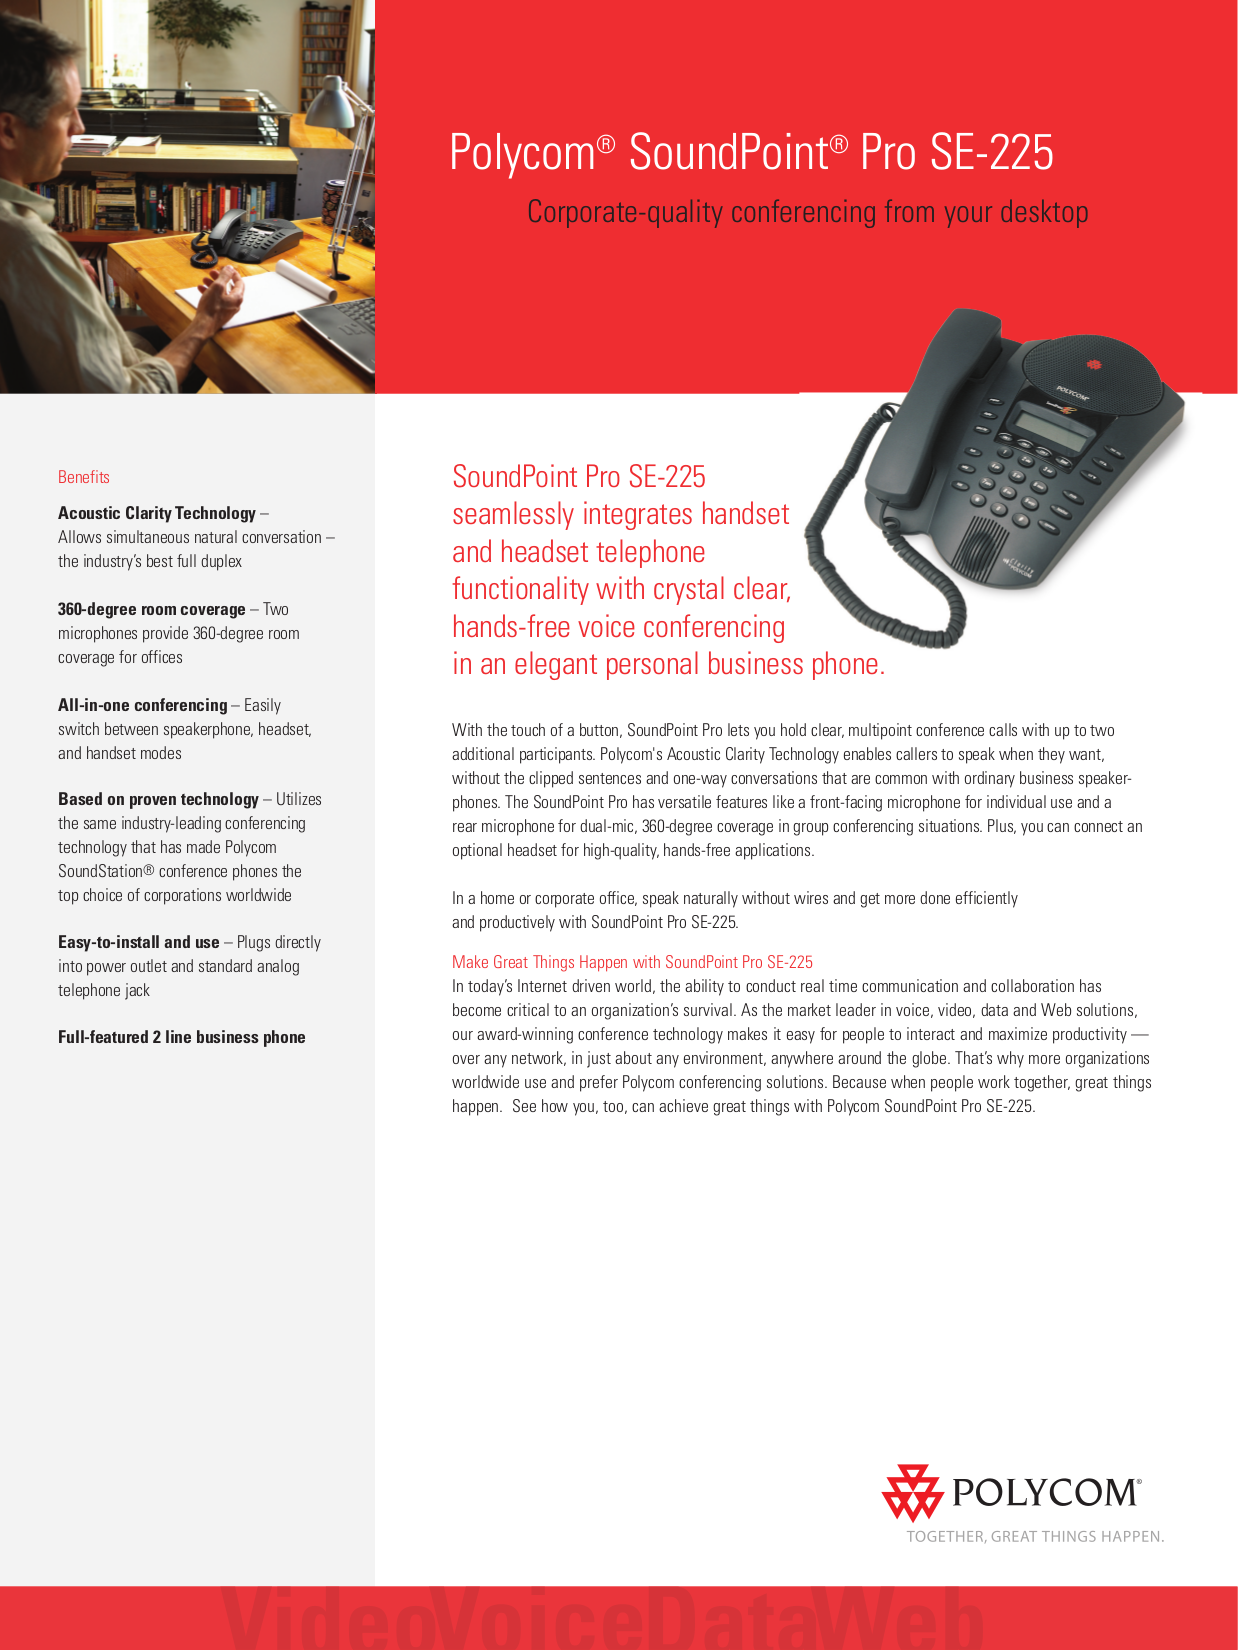 download free pdf for polycom soundpoint pro se 225 telephone manual polycom soundpoint pro user manual Polycom VVW